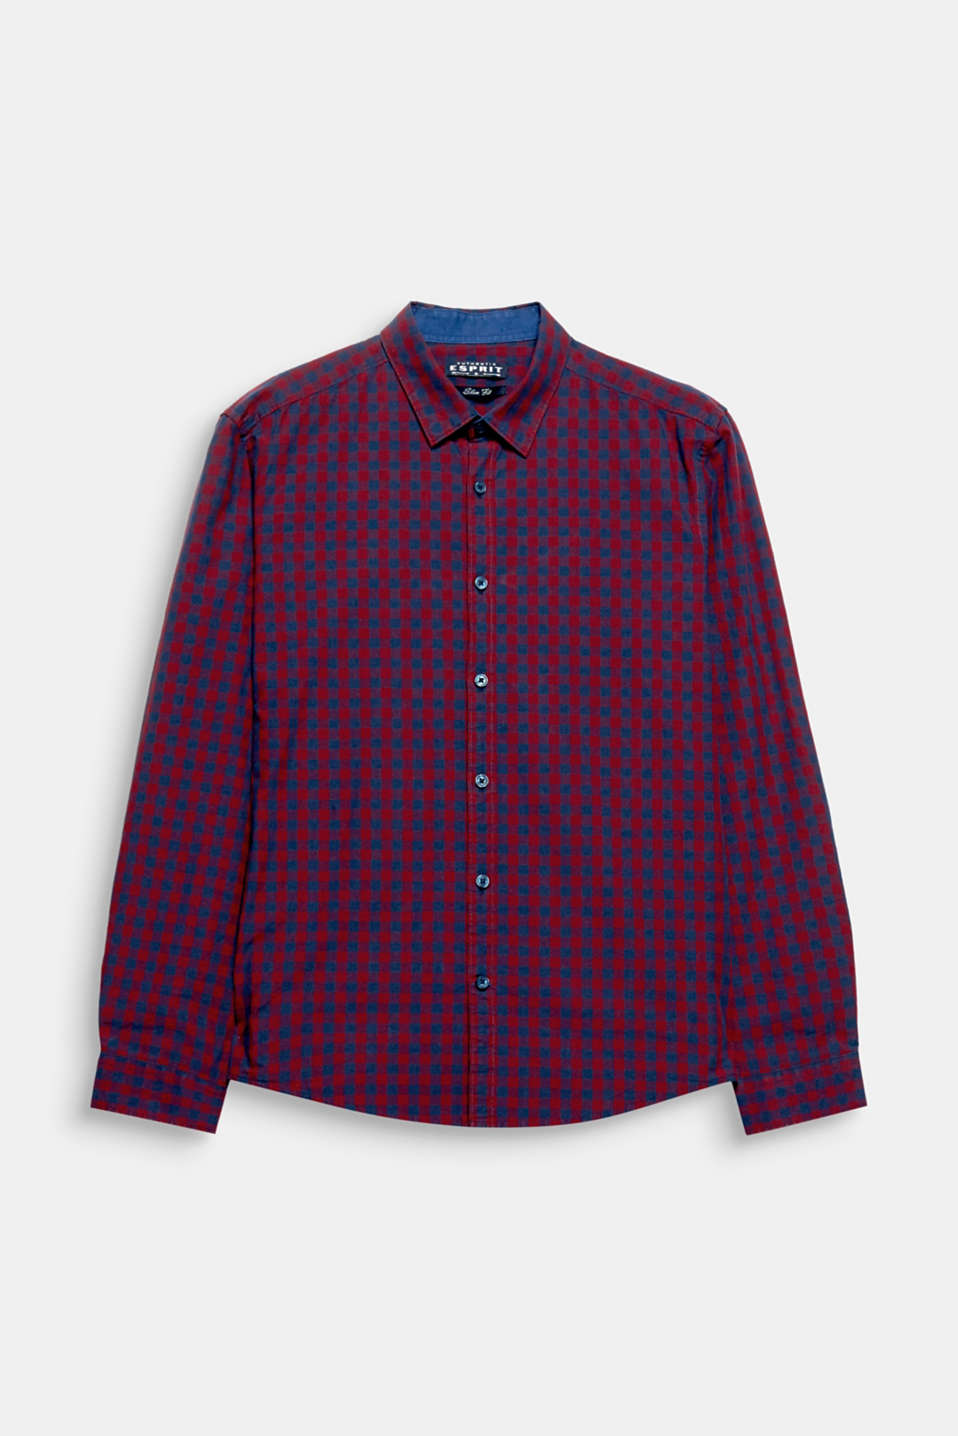 Cotton shirt with a classic Vichy check pattern